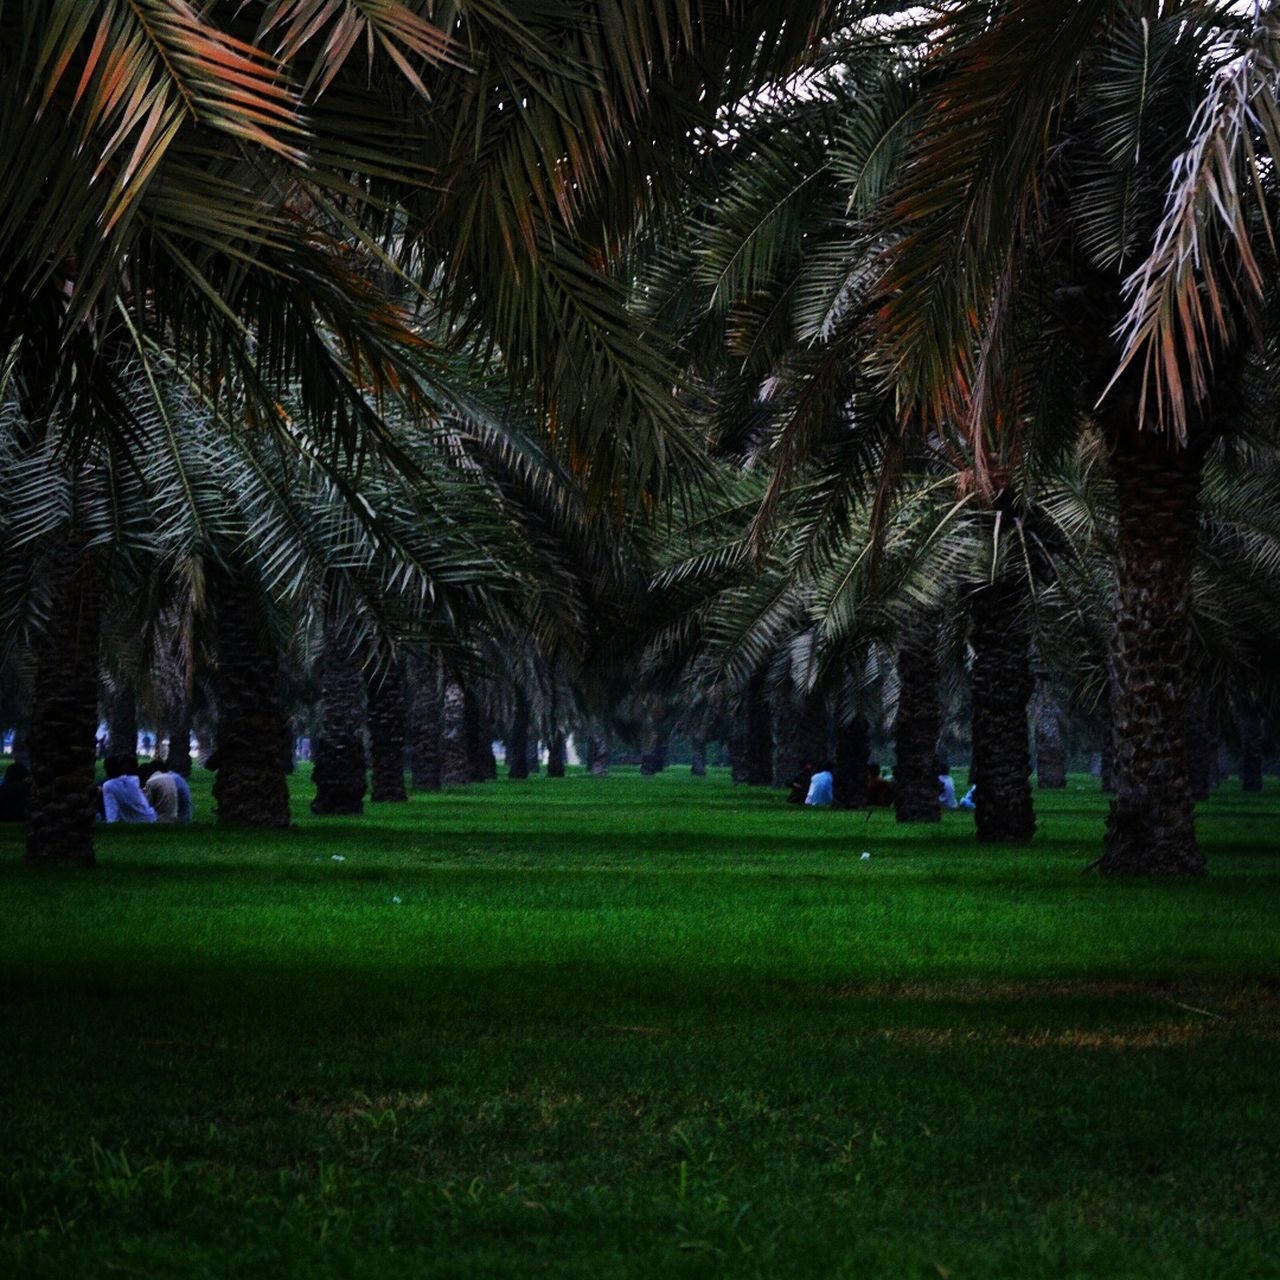 palm tree, grass, tree, growth, nature, green color, tranquility, beauty in nature, outdoors, night, no people